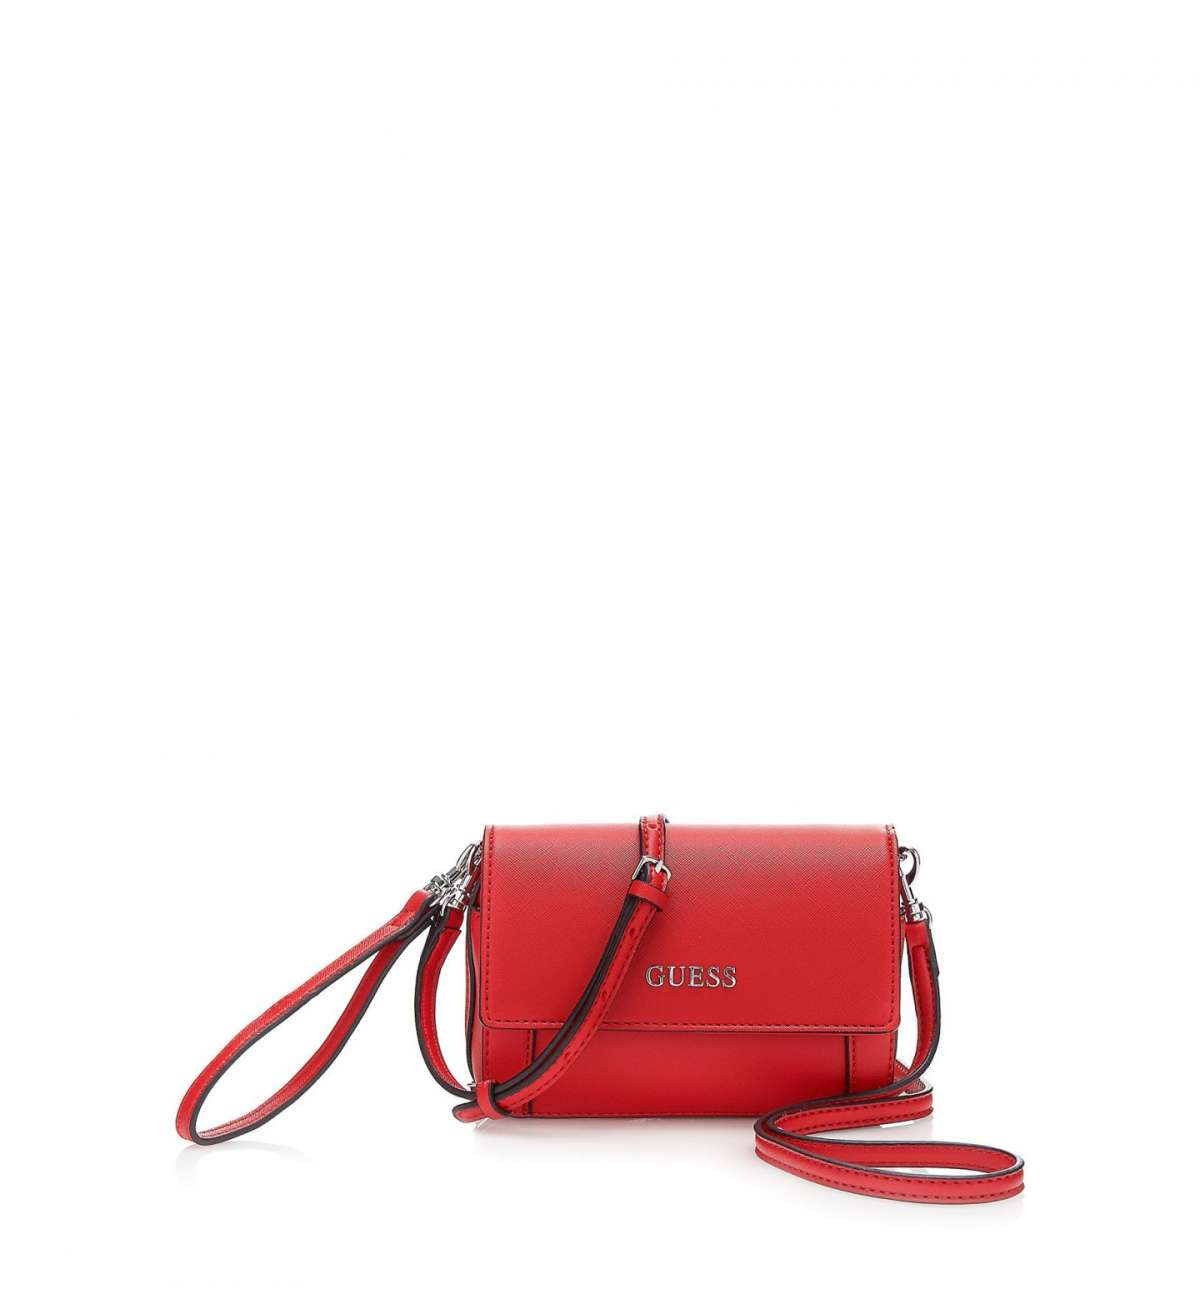 Tracollina rossa Guess